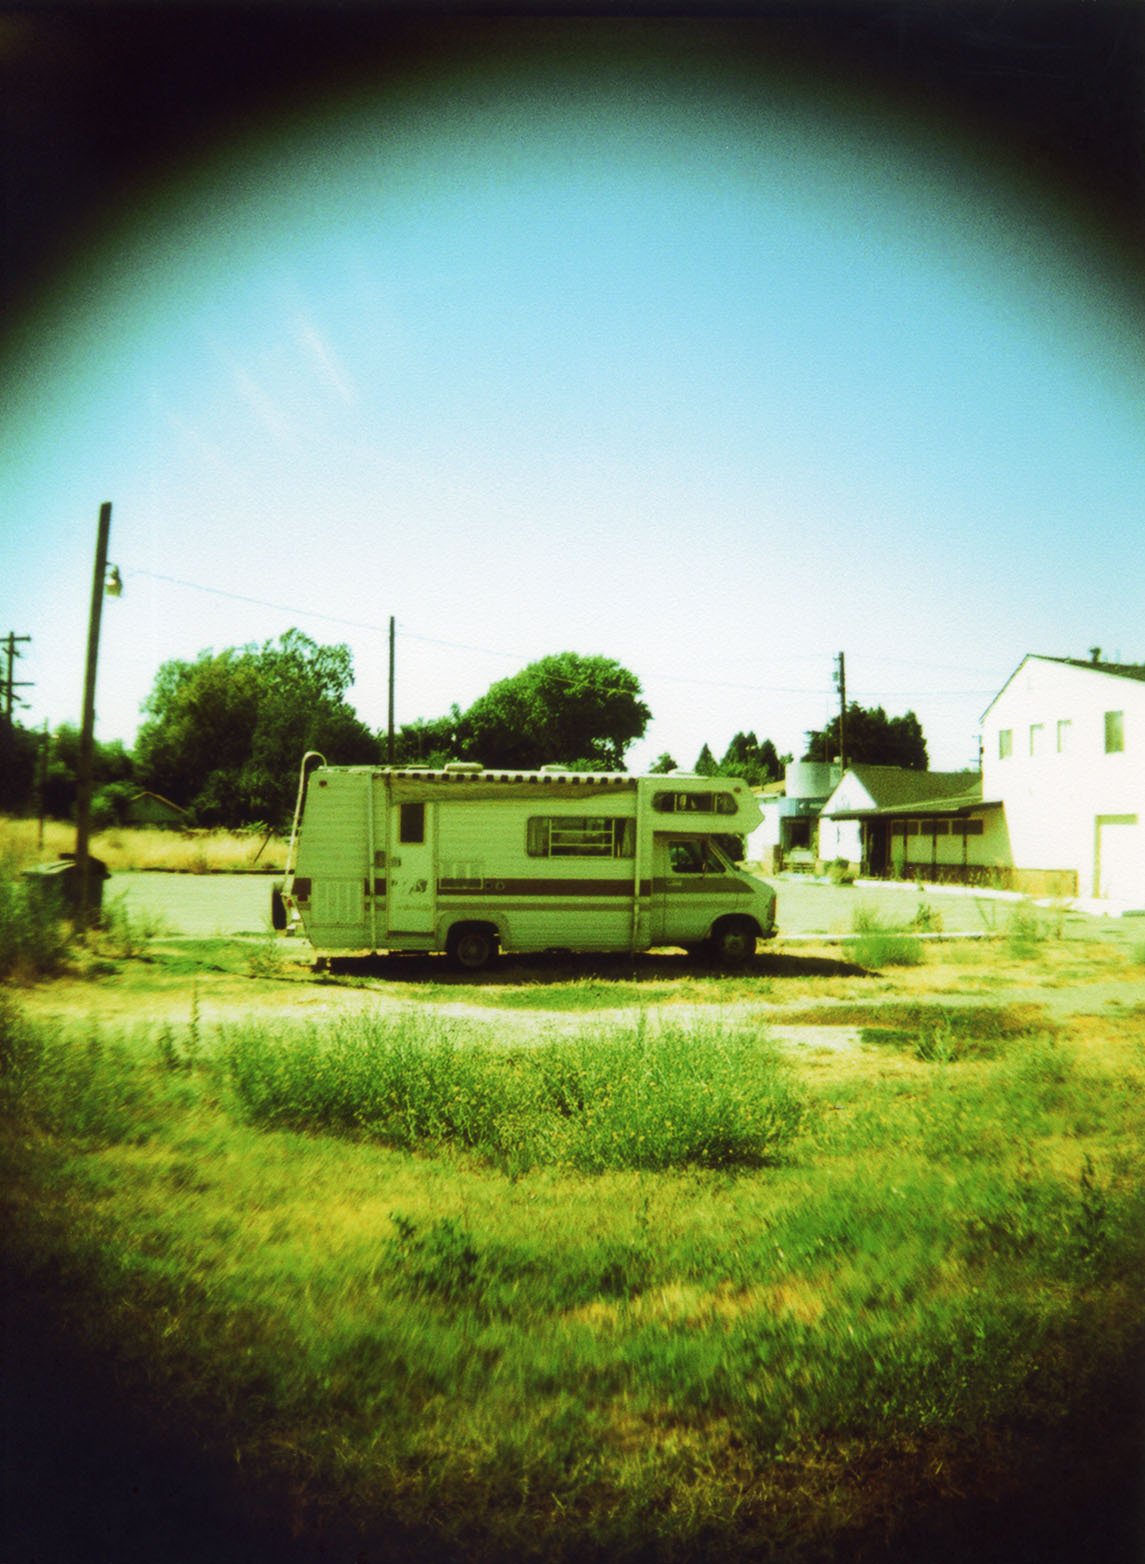 Holga 120N and cross processed.